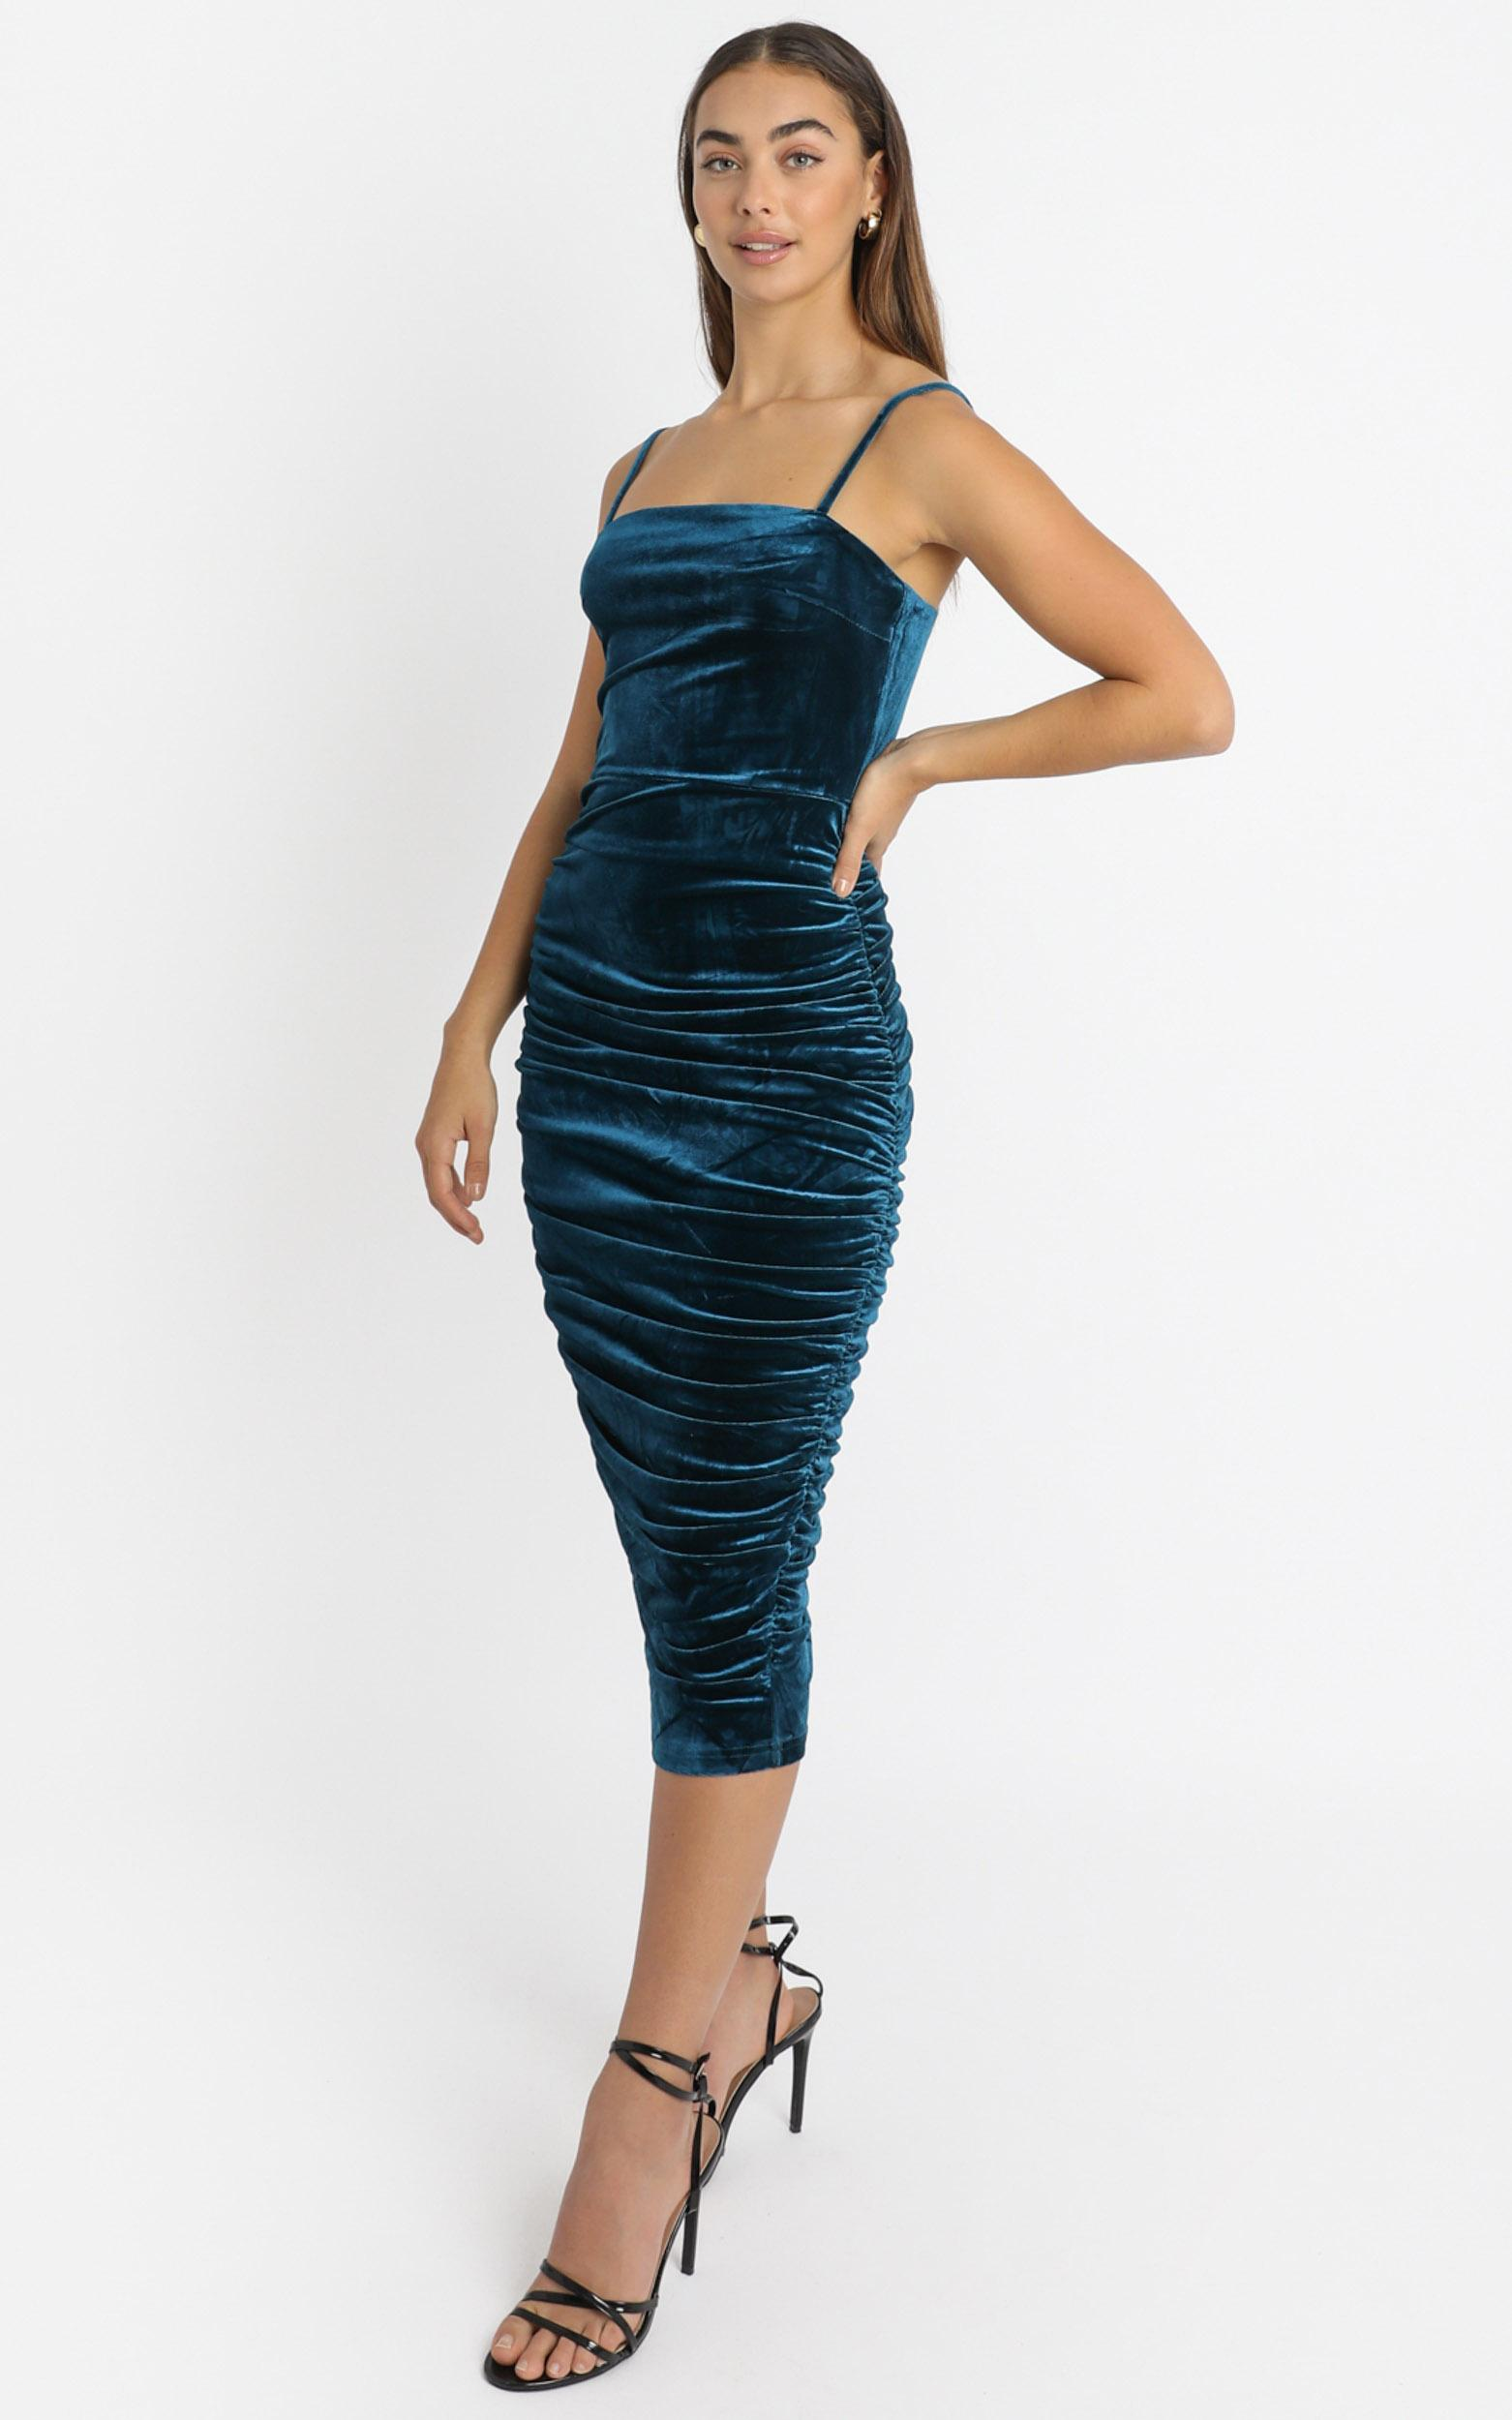 Haisley Ruched Mini Dress in teal velvet - 4 (XXS), Green, hi-res image number null